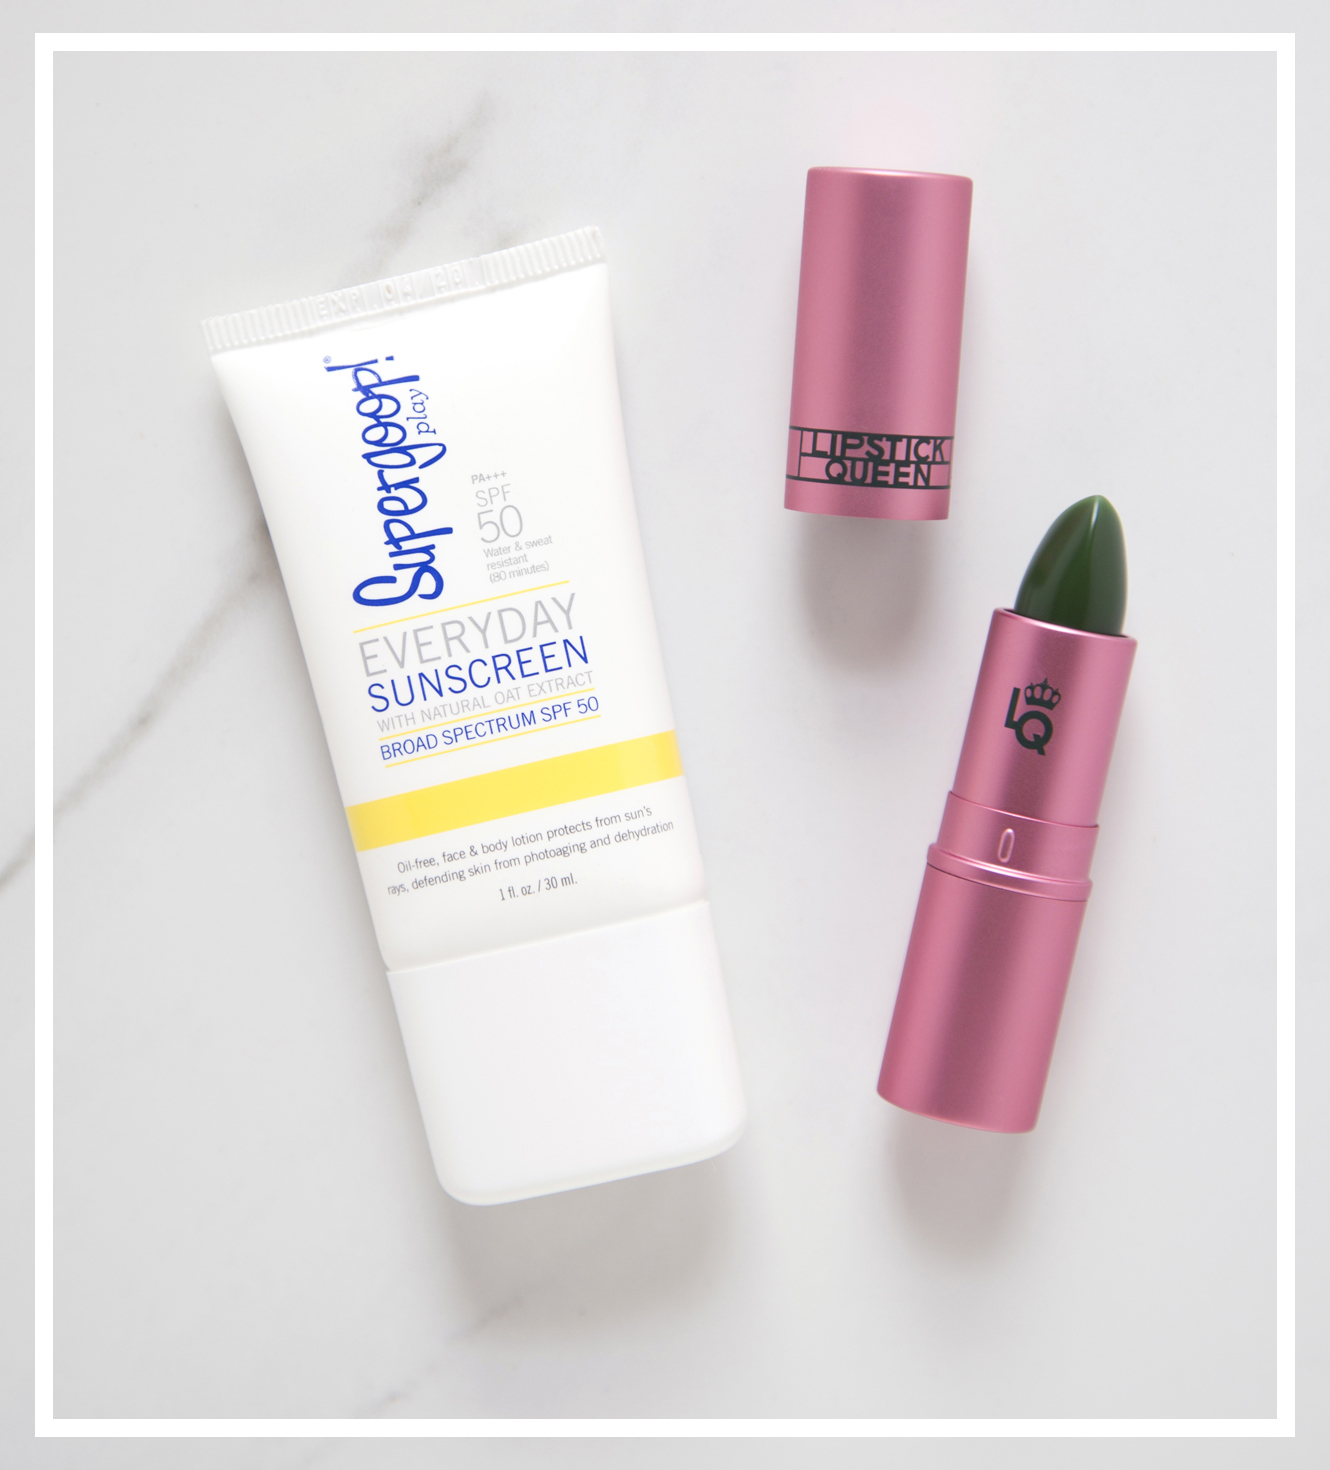 I've linked both of the following beauty products to Dermstore who currently have a discount of 25% off with participating brands but the sale ends today, Aug. 19th so hurry before it's over!